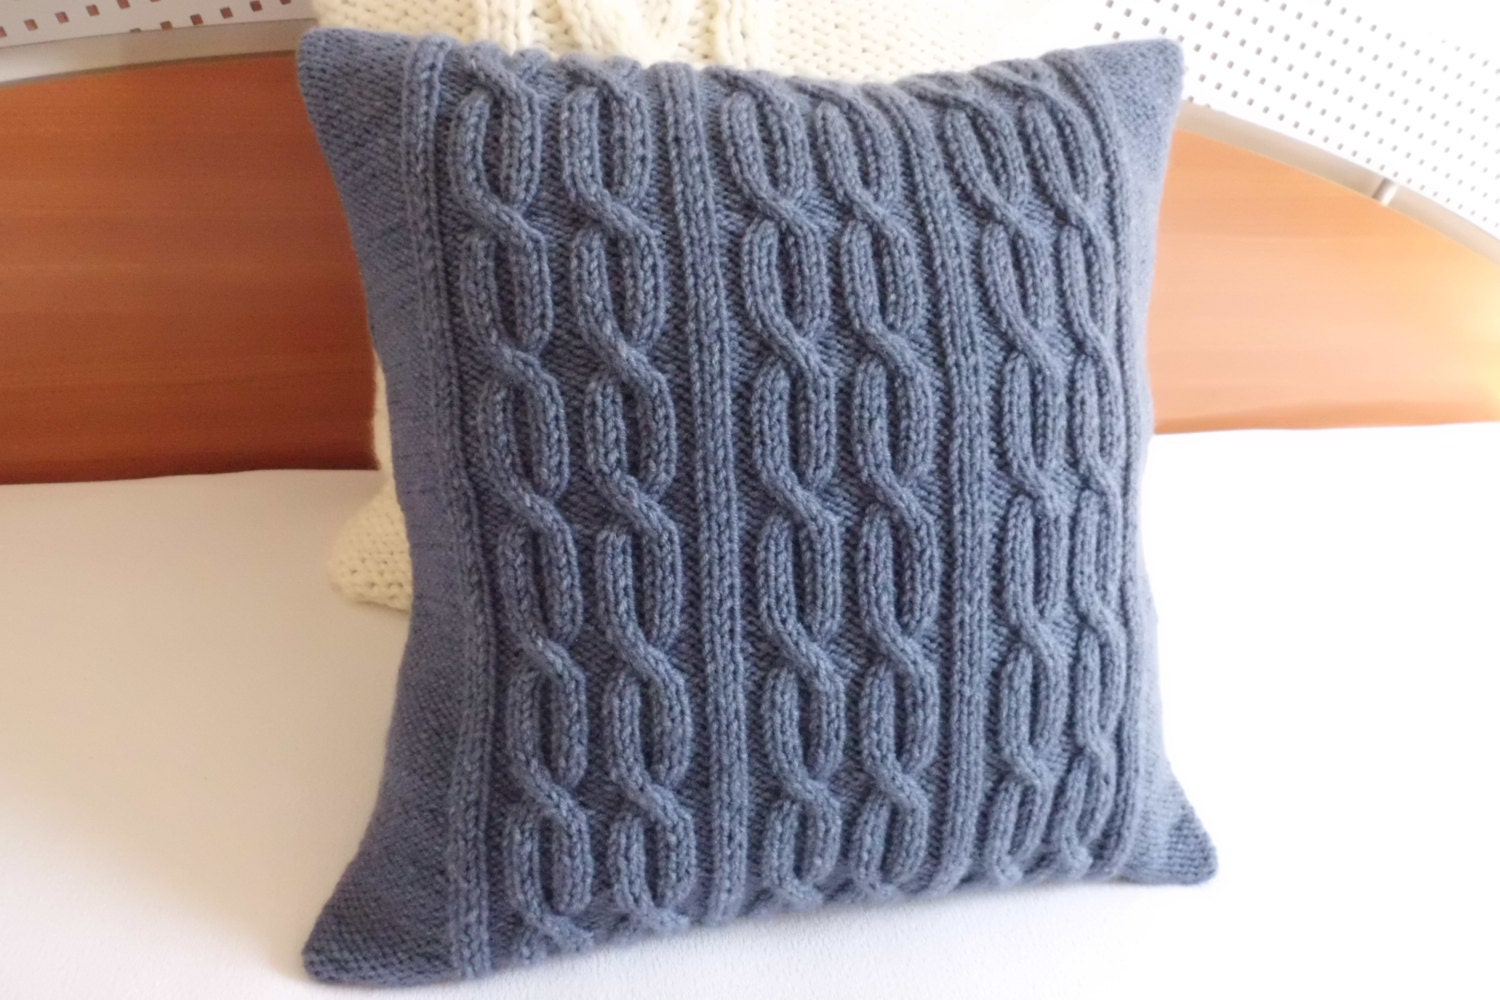 Steel Blue Throw Pillow : Cable knit decorative steel blue pillow blue gray throw